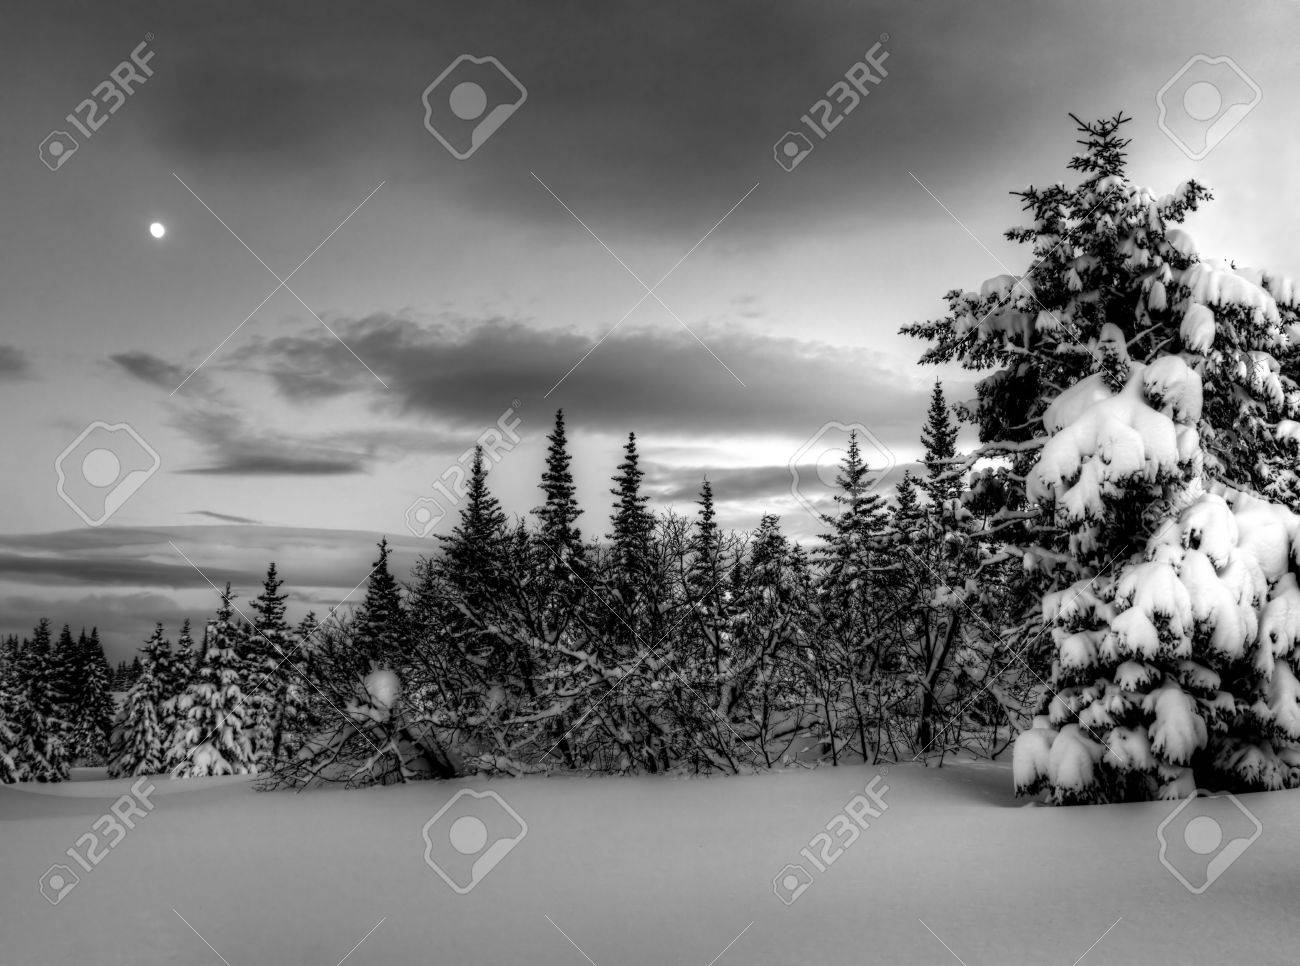 Alaskan winter night with moon, spruce trees and snow in black and white. Stock Photo - 12538755